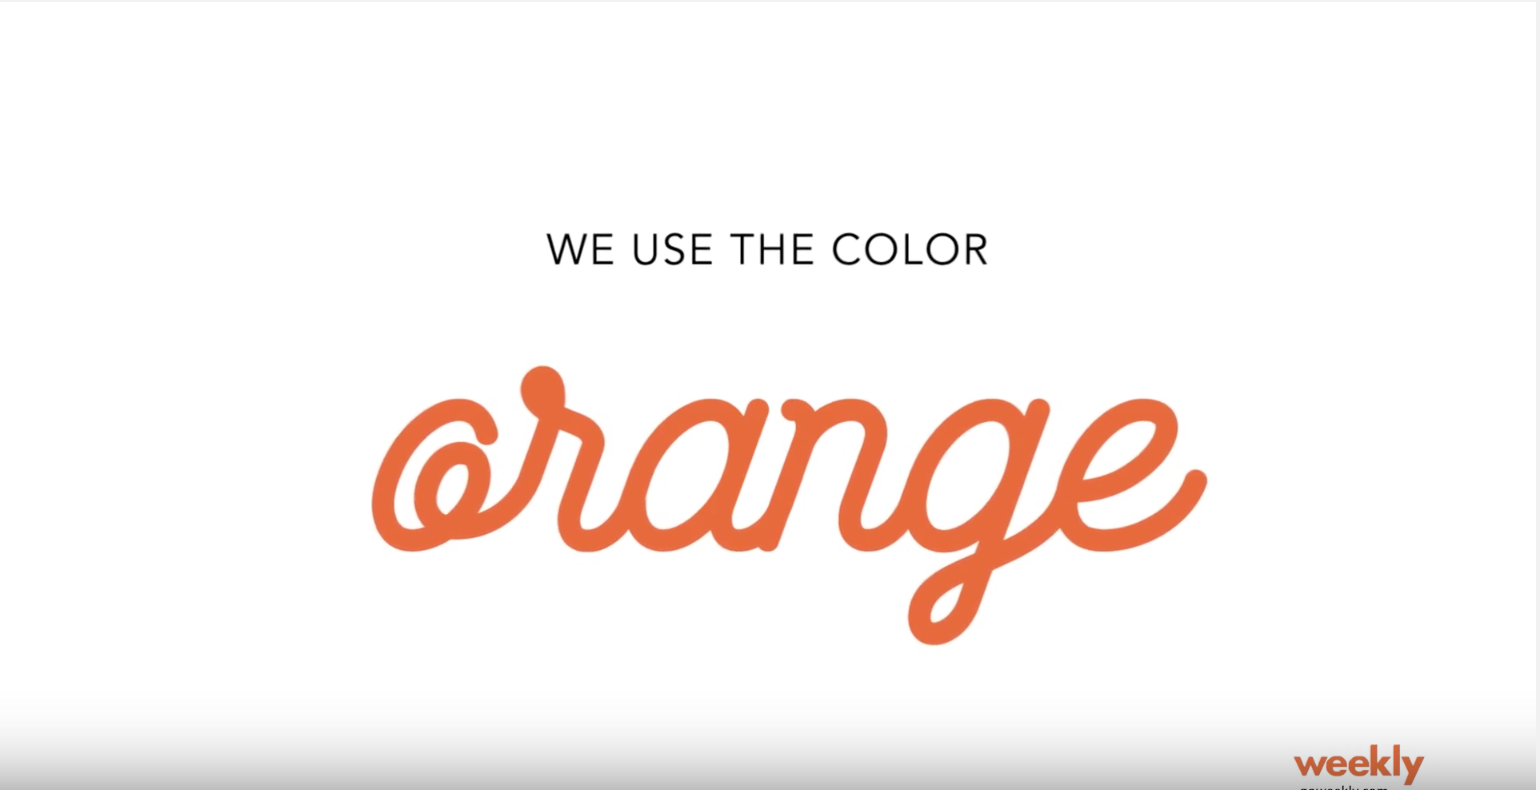 Why The Color Orange?